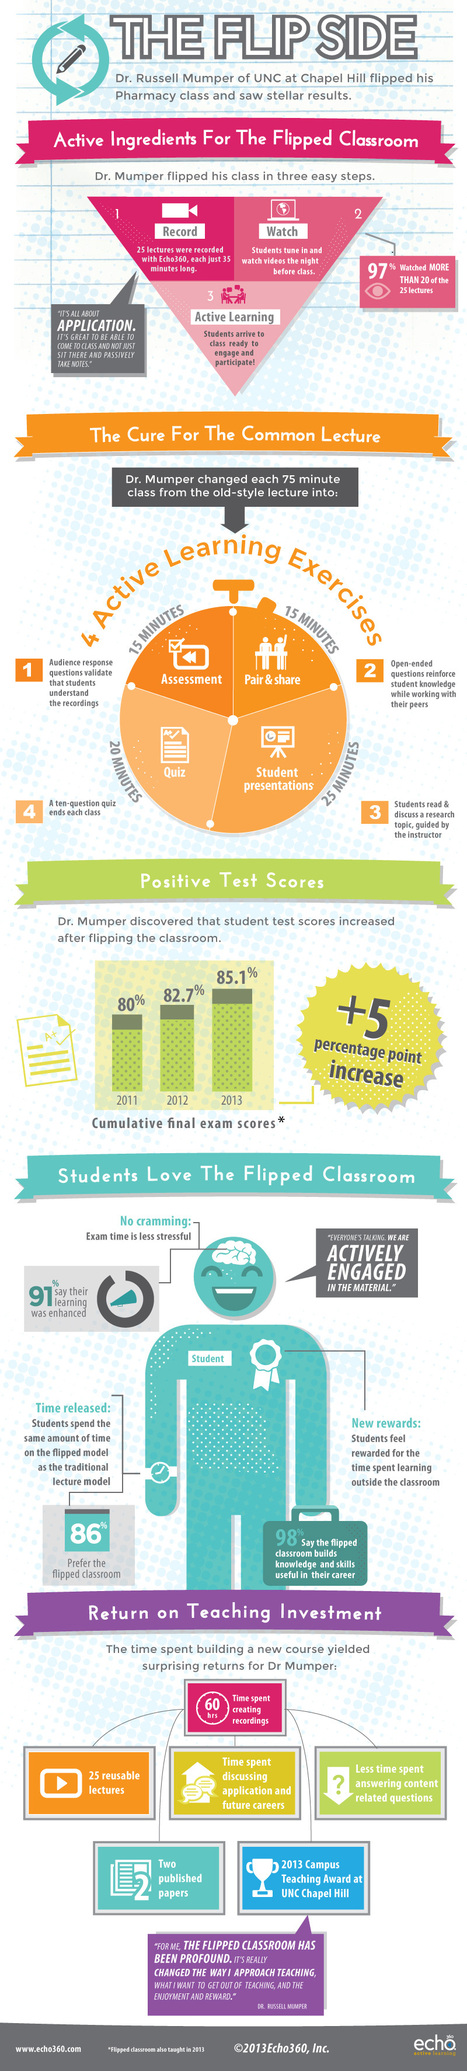 Teachers Practical Guide to A Flipped Classroom | Infographic | Media and technology | Scoop.it